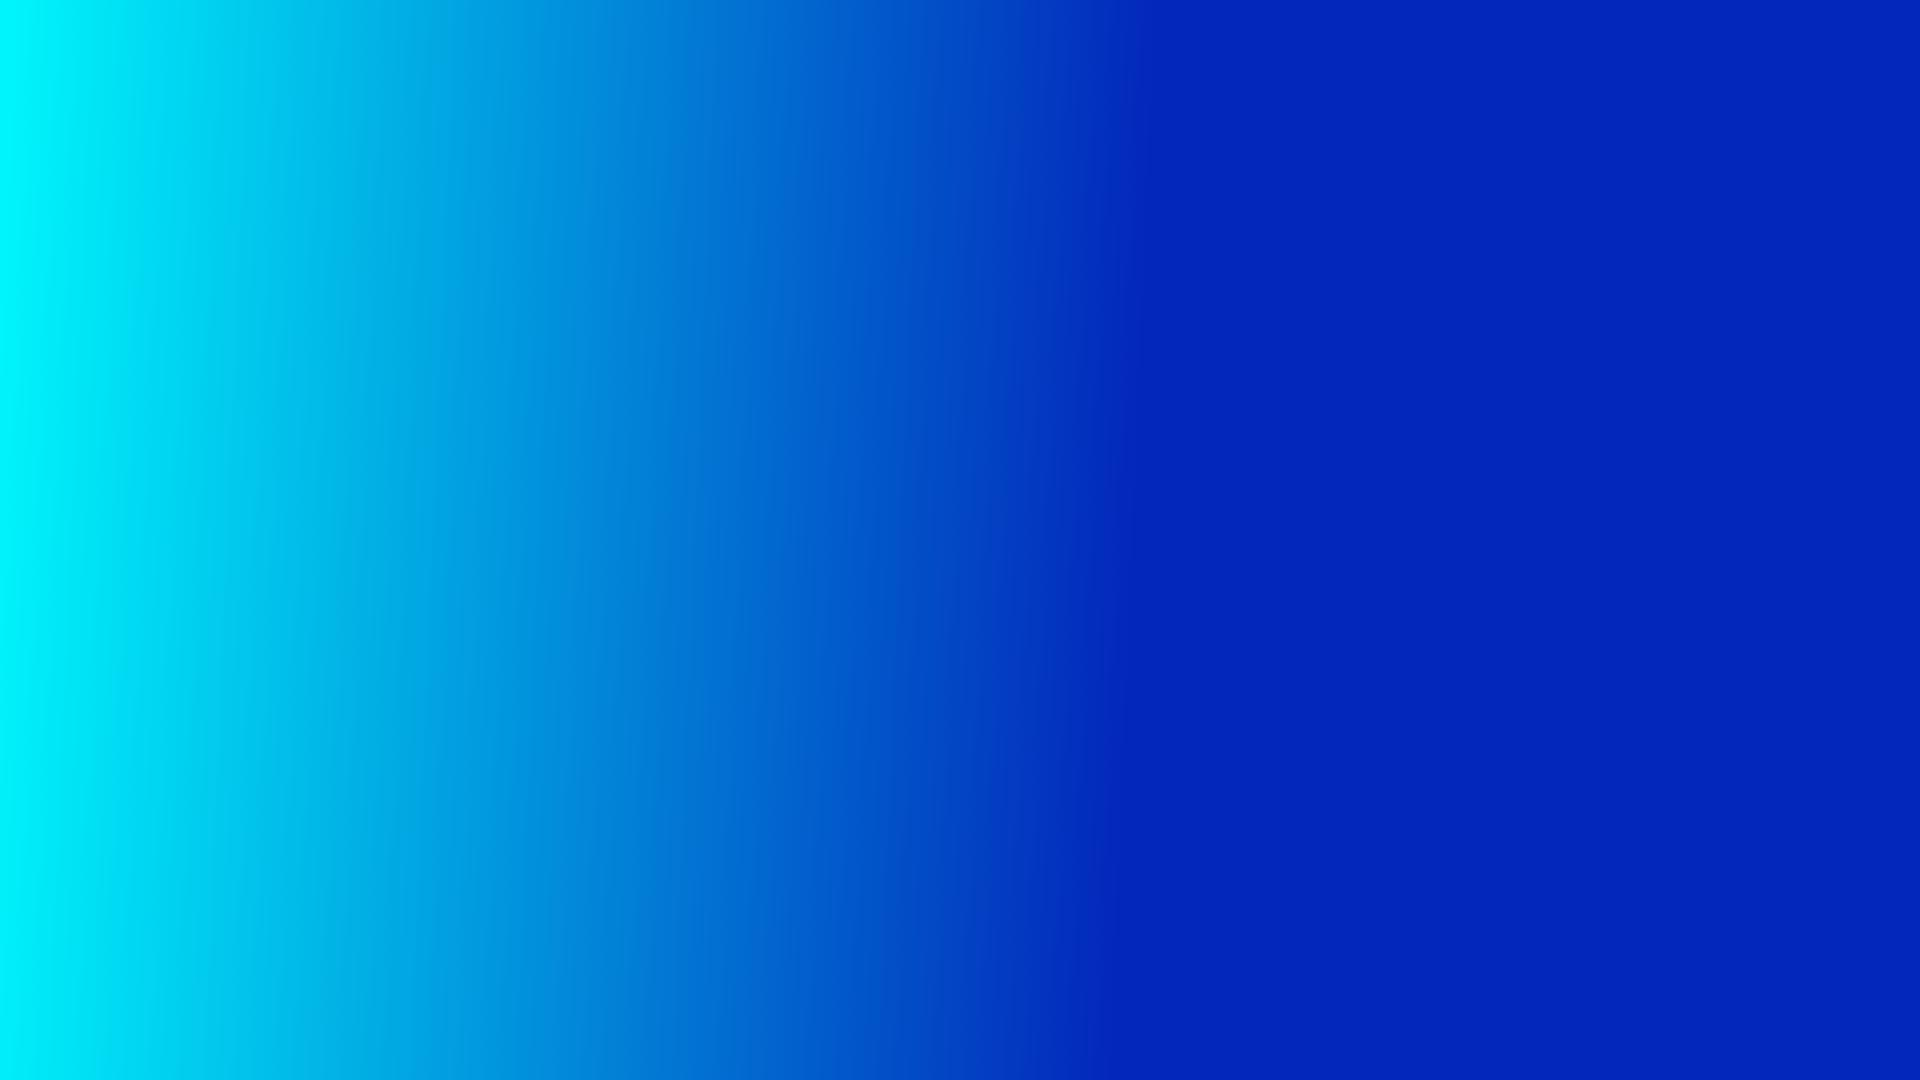 The  Ocean Colours(colors if american eng.) Gradient